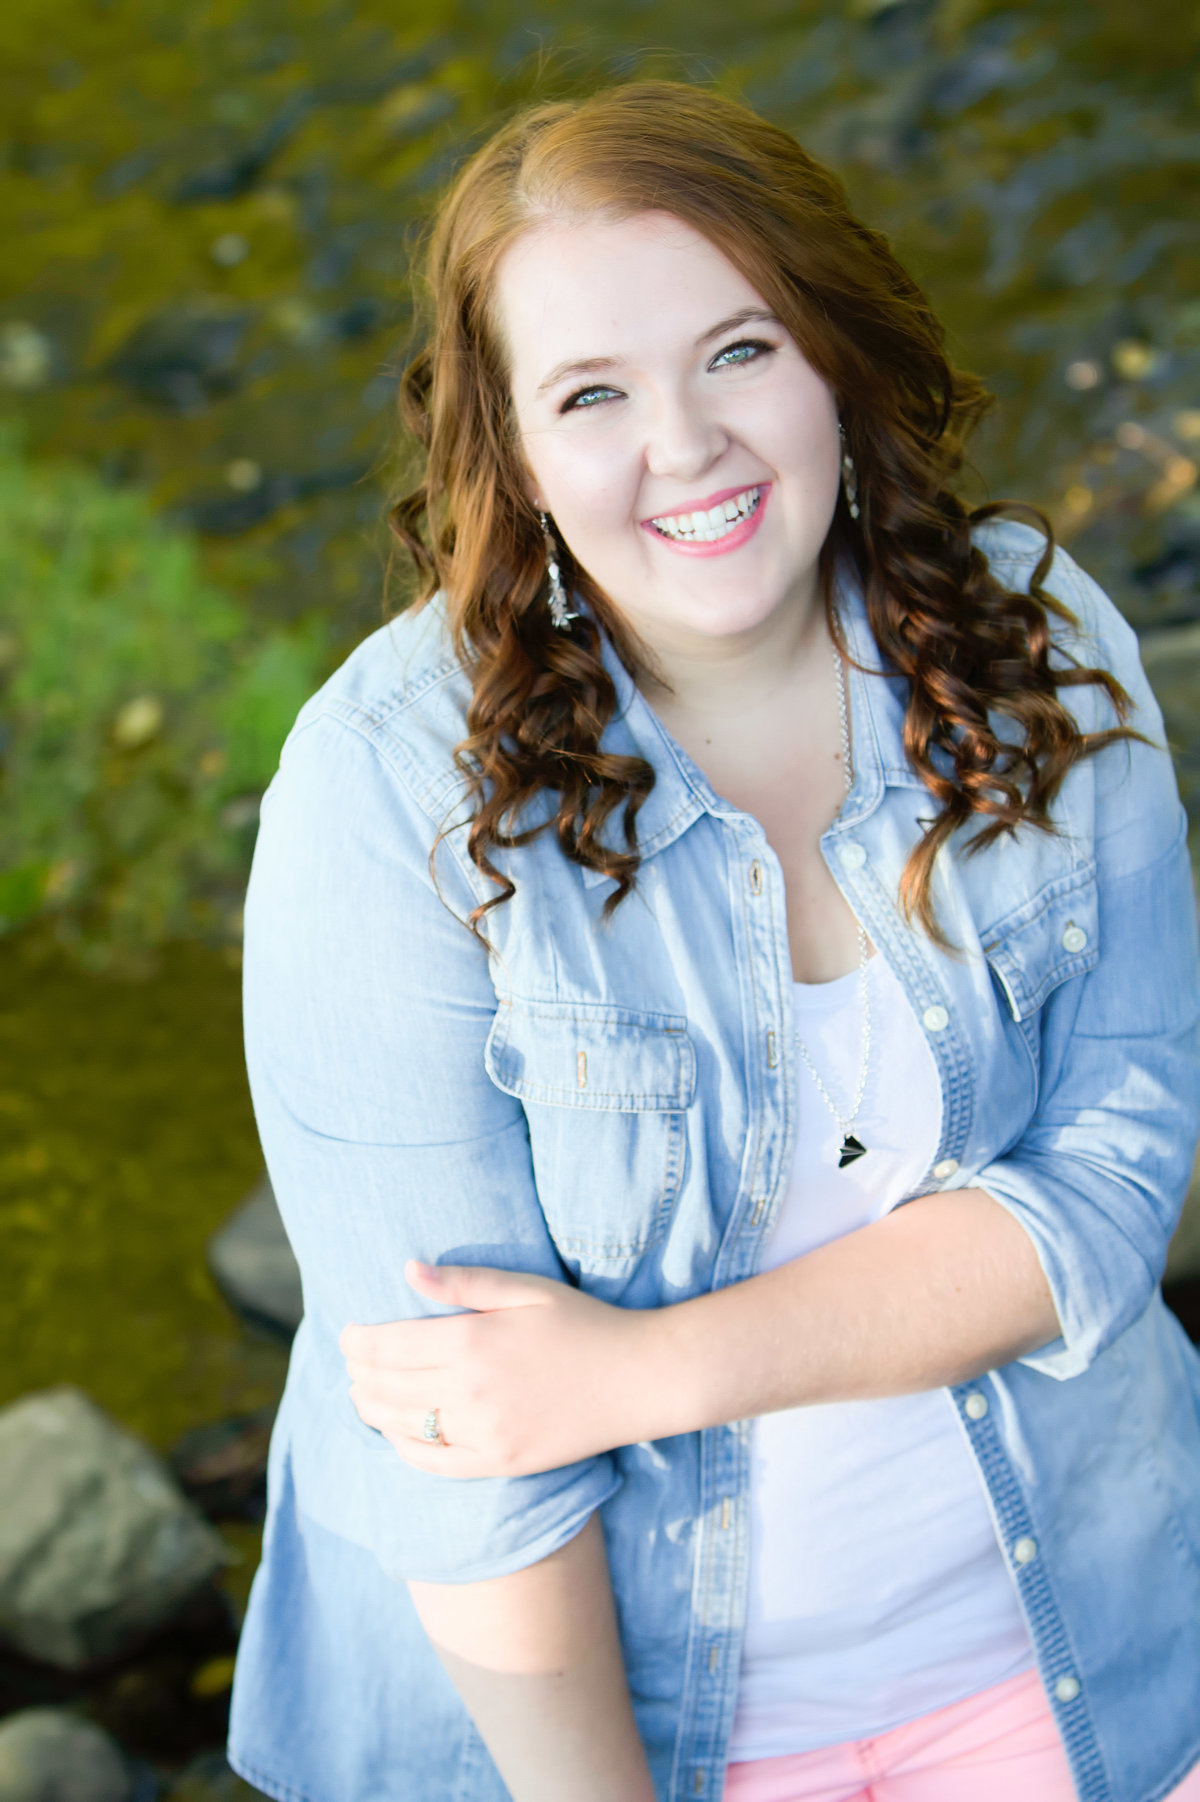 Girl Senior portrait by creek